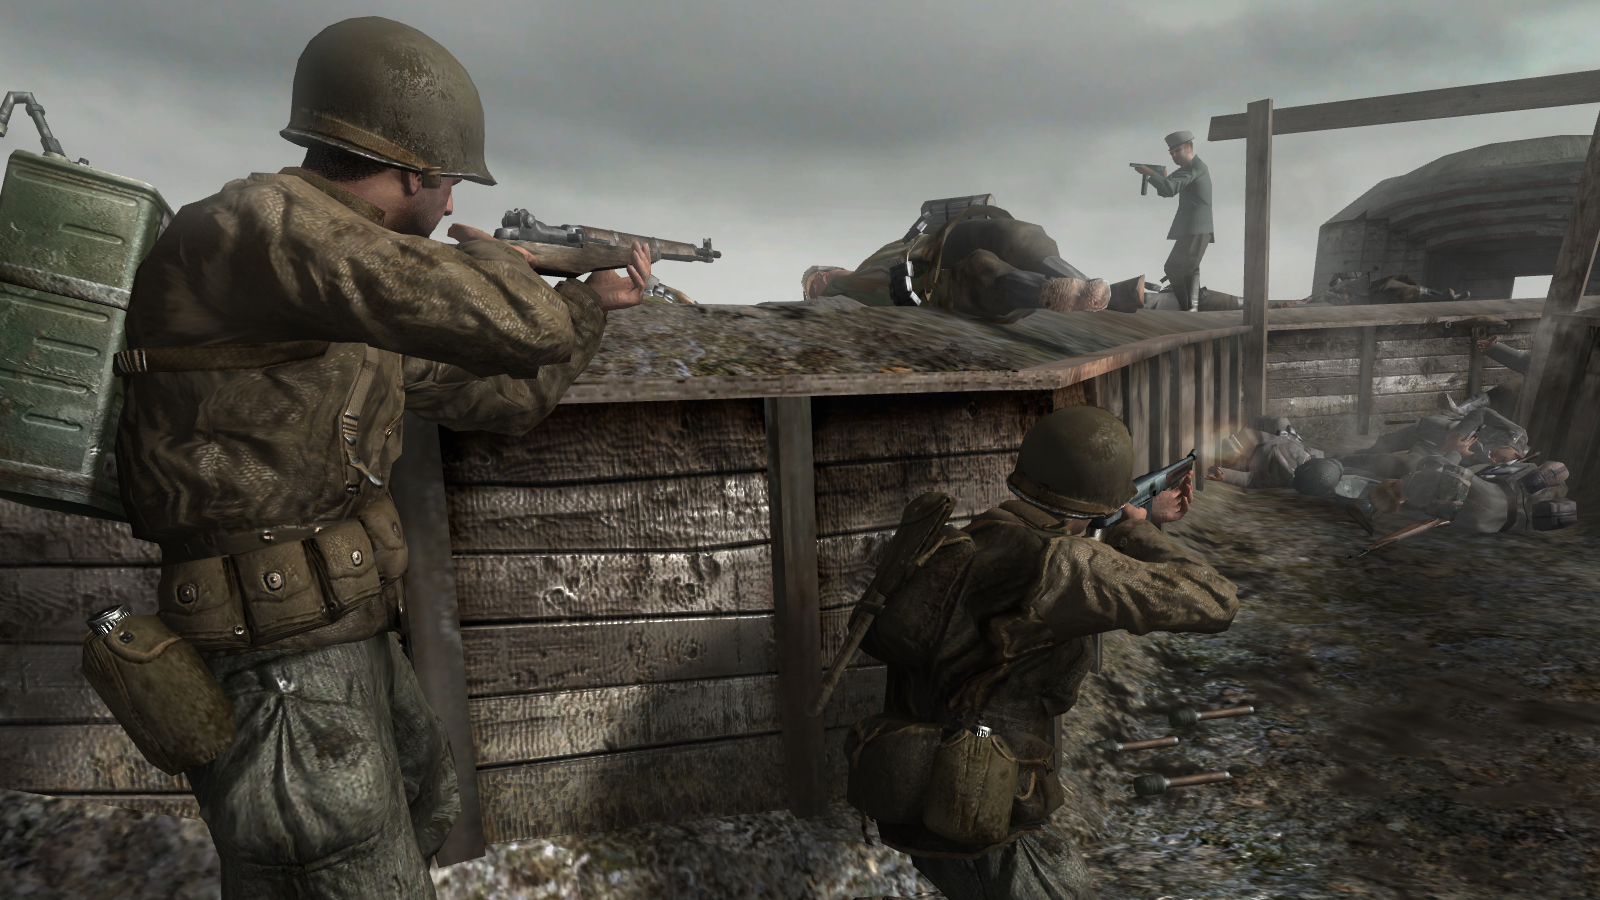 0c78be7527b2d61fc86ad898c756c8e3b106b0ea Call of Duty 2 Runs Smooth As Silk With Xbox Ones Backwards Compatibility